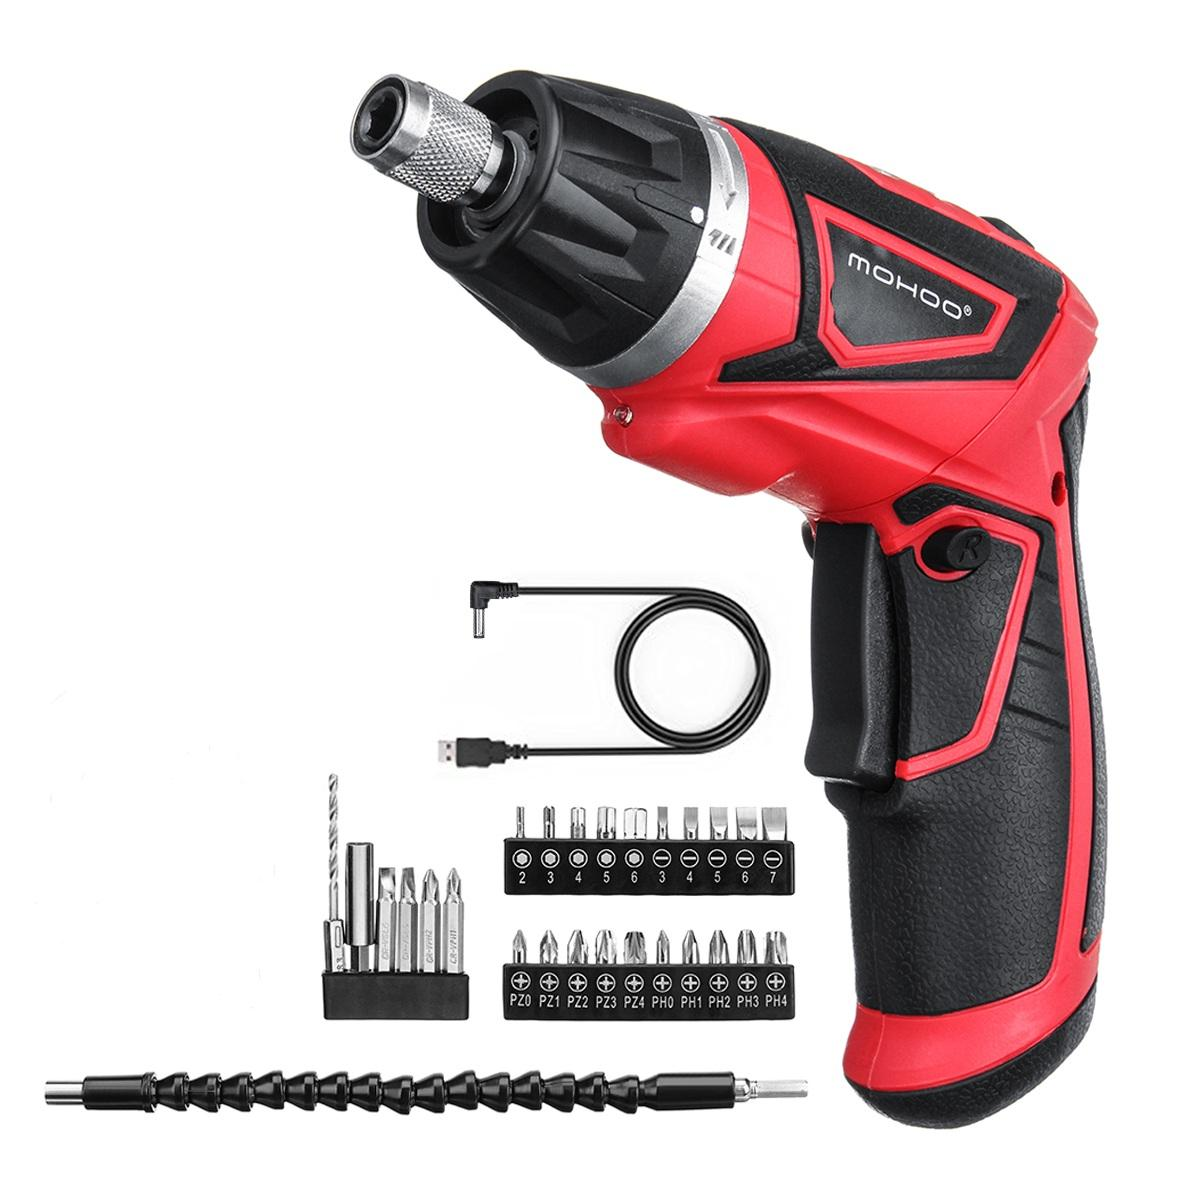 MOHOO 3.6V 2000mAh USB Cordless Electric Screwdriver Power Screw Driver Tool with 28 Accessories